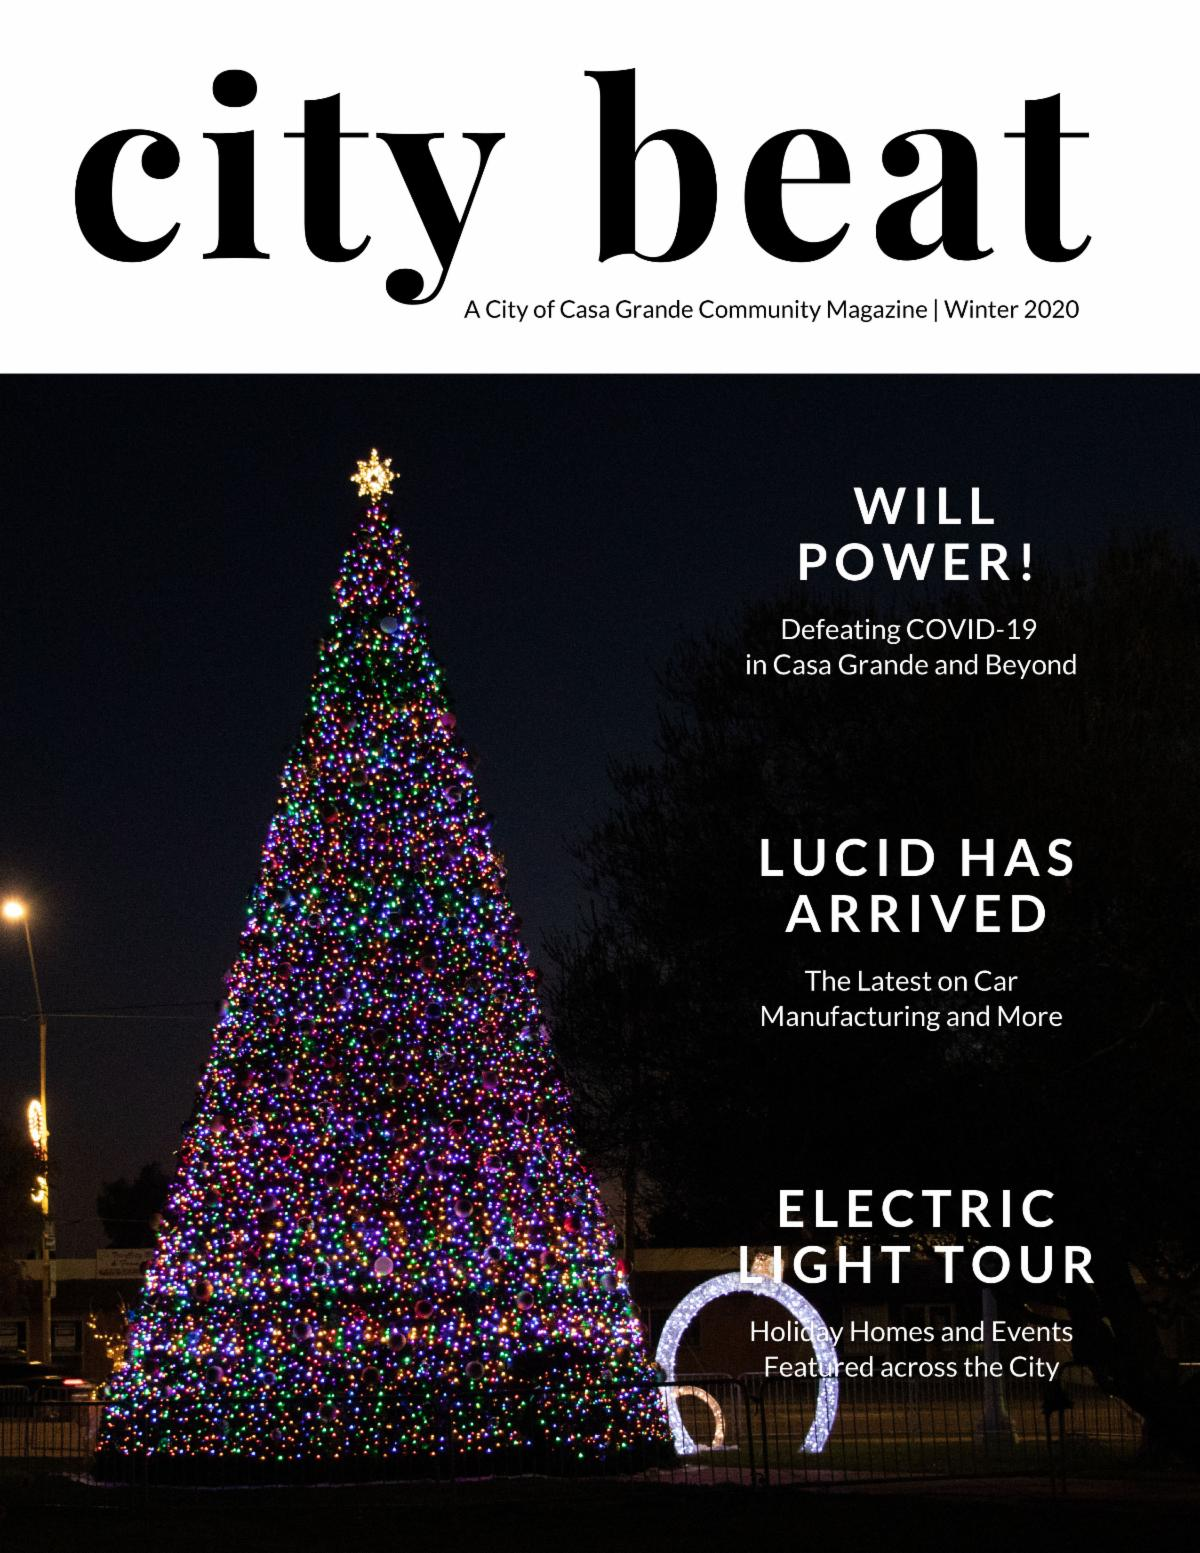 City Beat Magazine Cover for Winter 2020